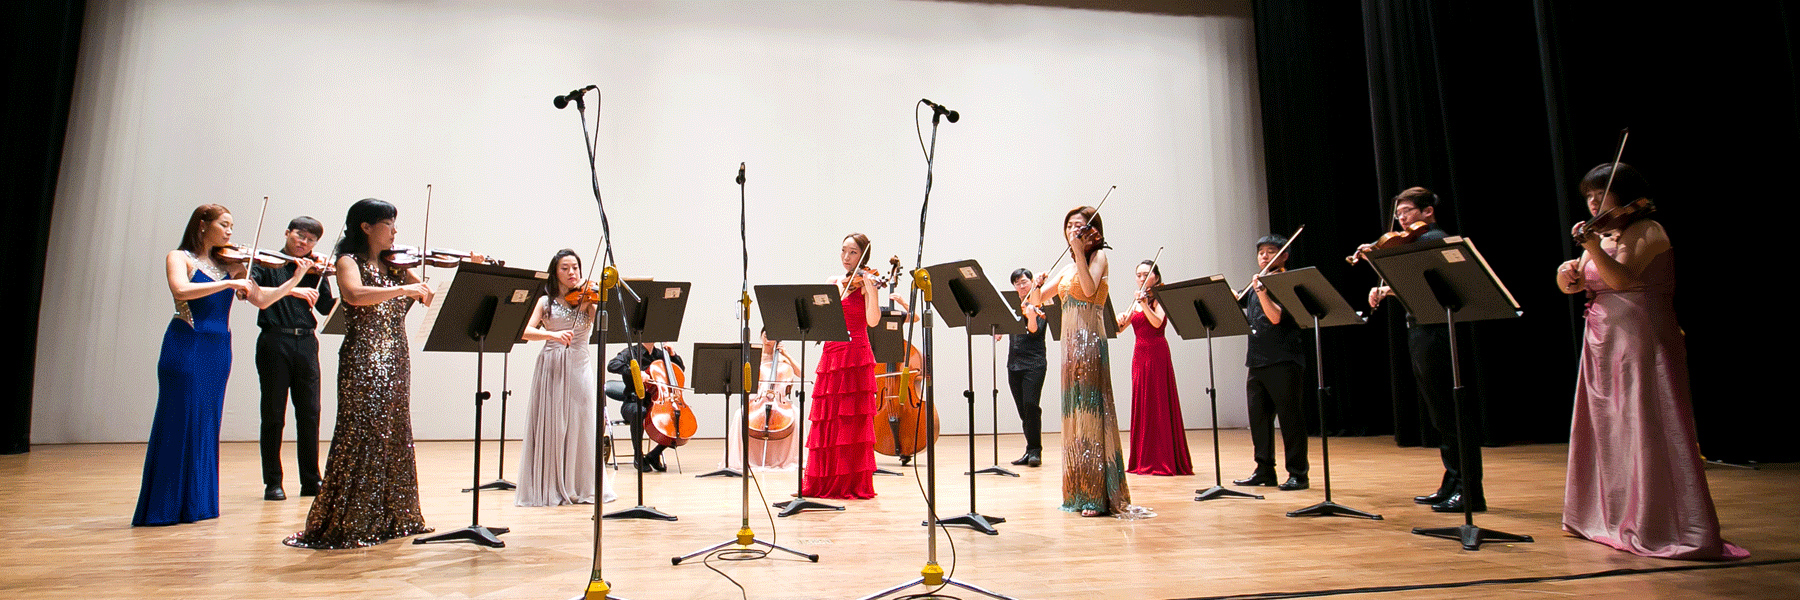 M&P Chamber Orchestra